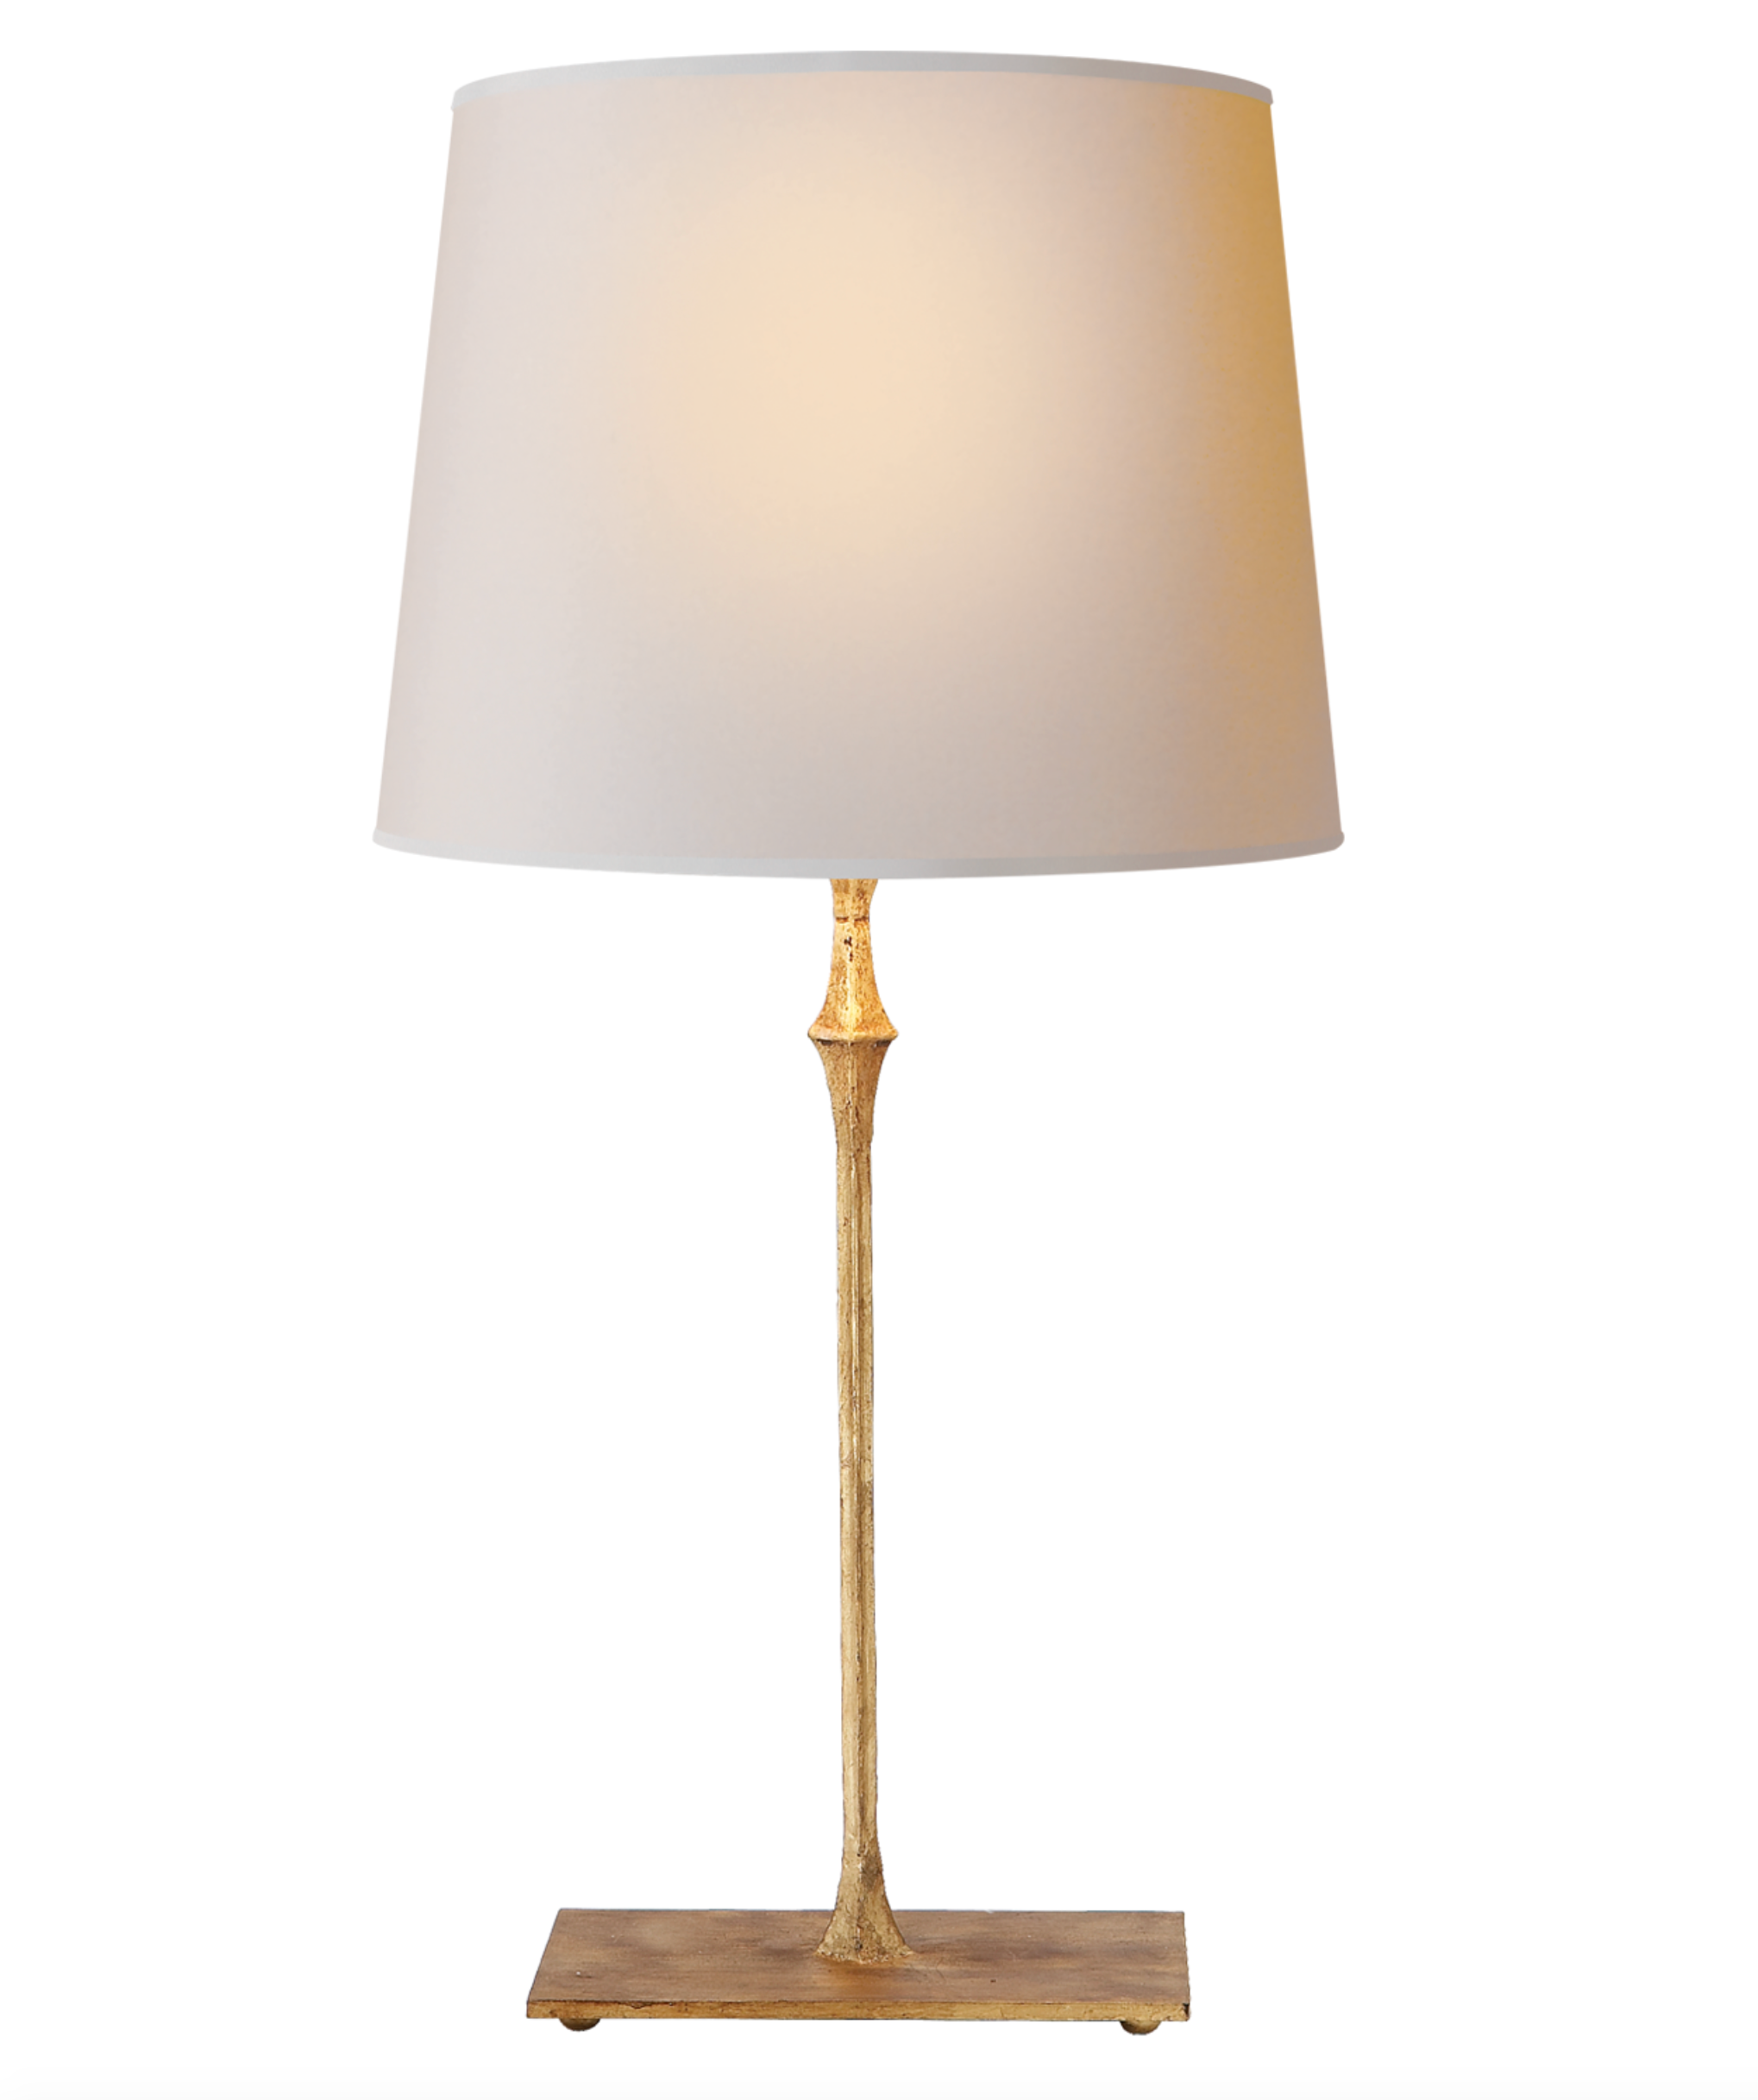 Dauphine Bedside Lamp